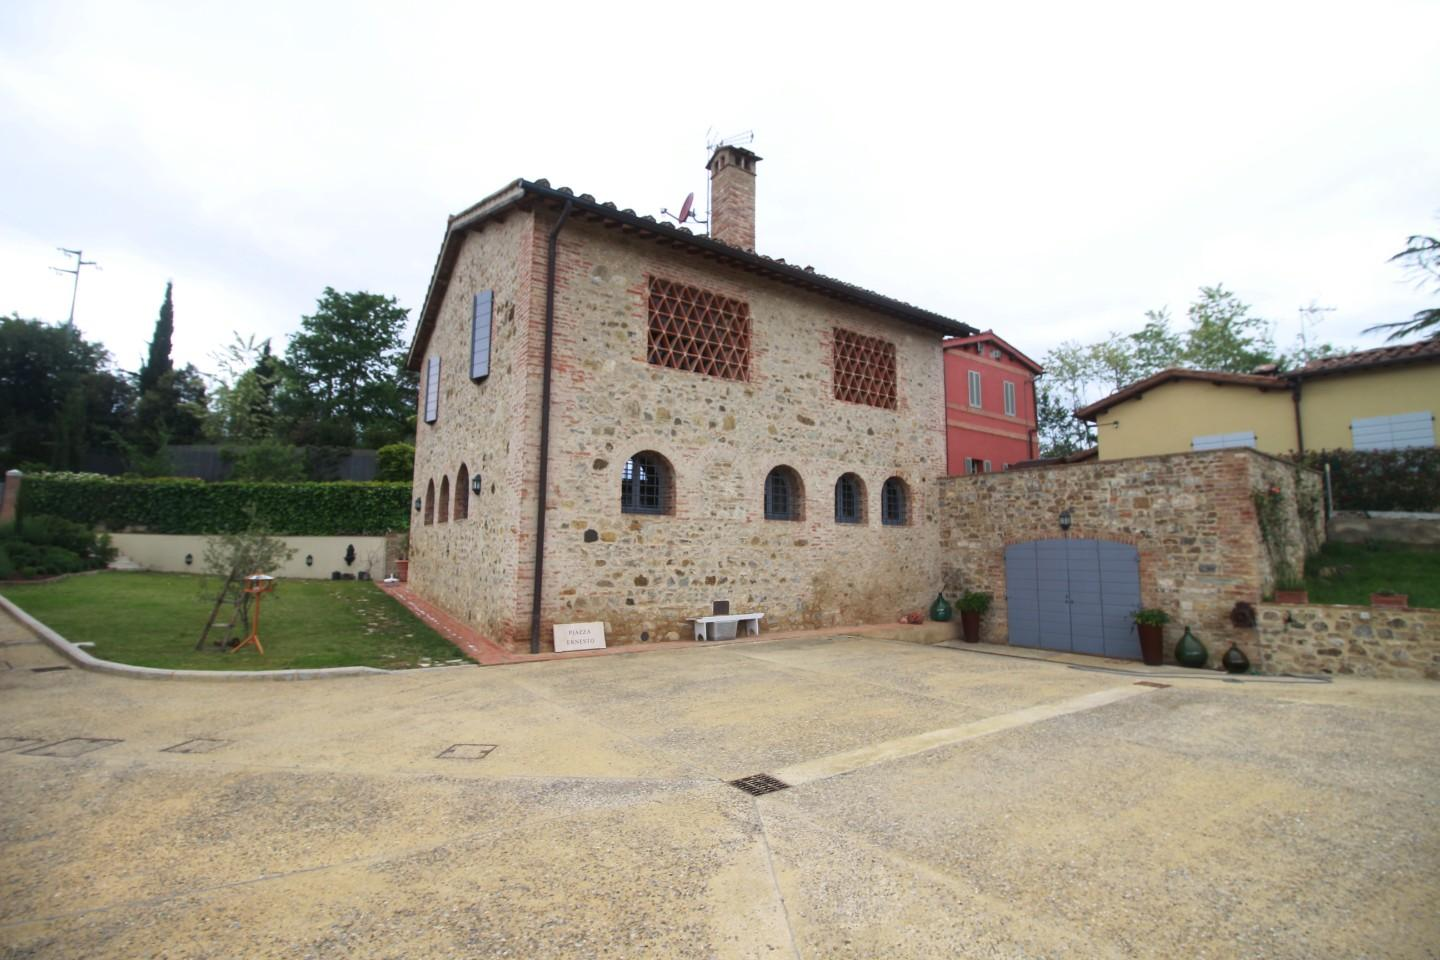 Farmhouse for sale in LaundriesSiena